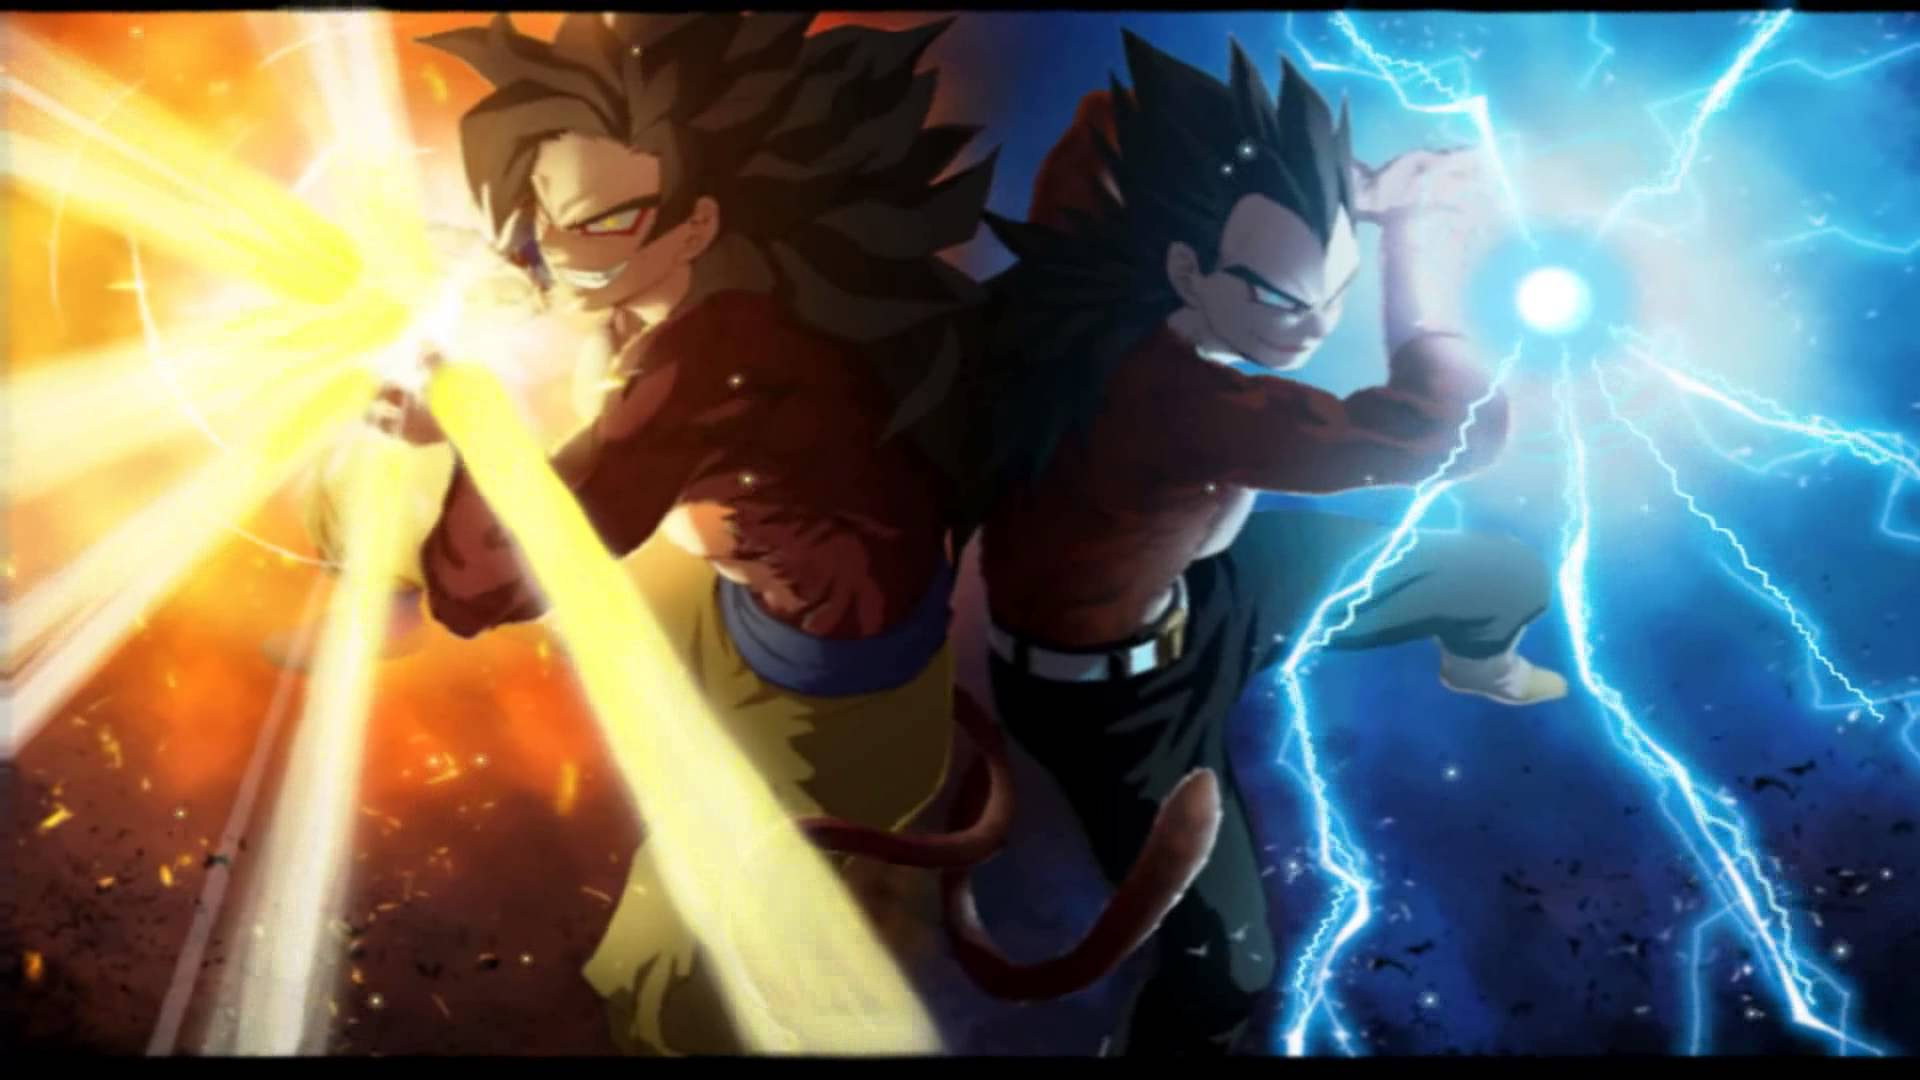 30 Pictures In High Quality - Dragon Ball Z 3D by Basma